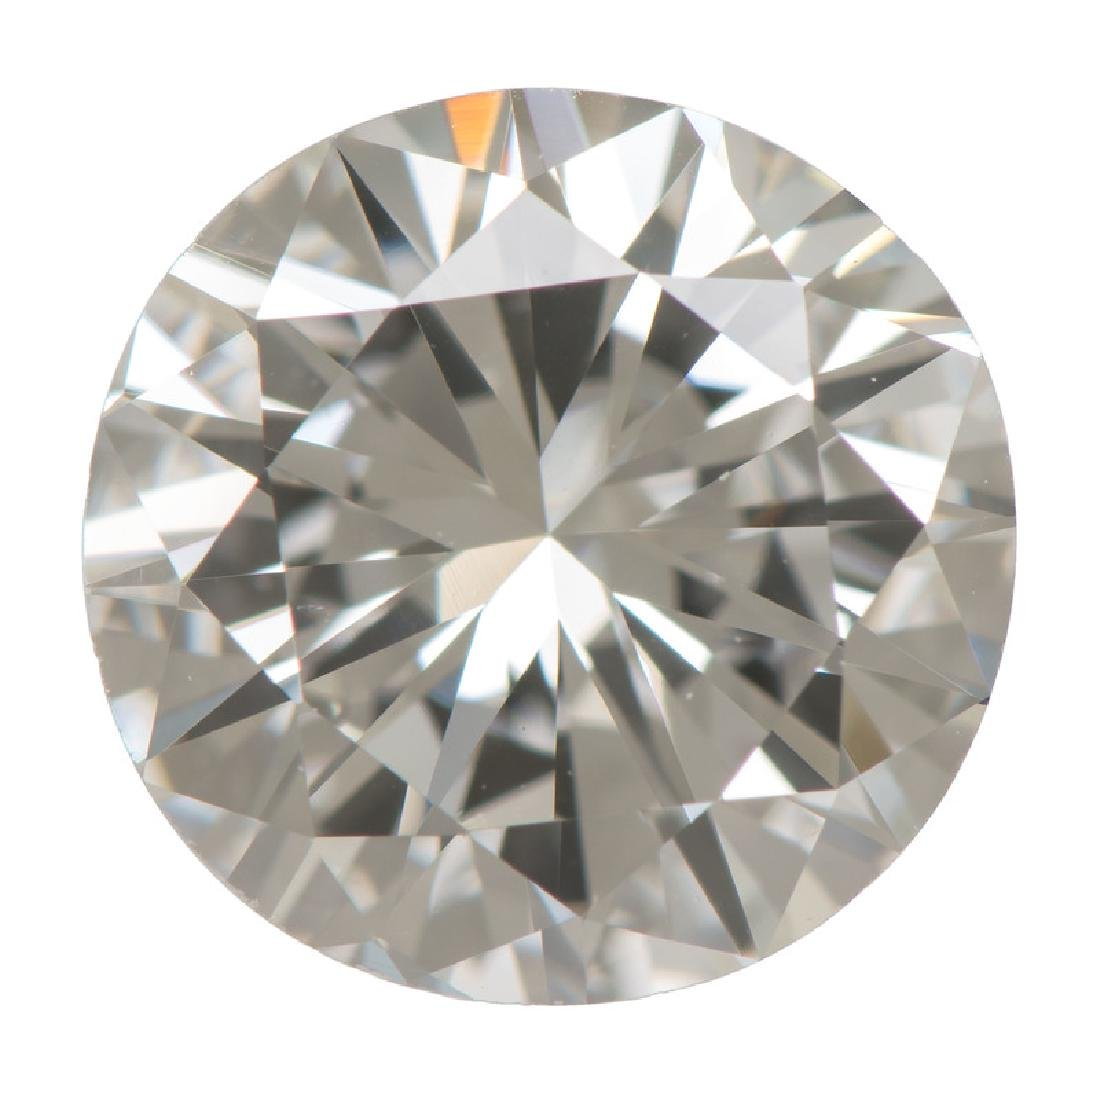 GIA Certified 1.53 Carat Round Brilliant Cut Diamond